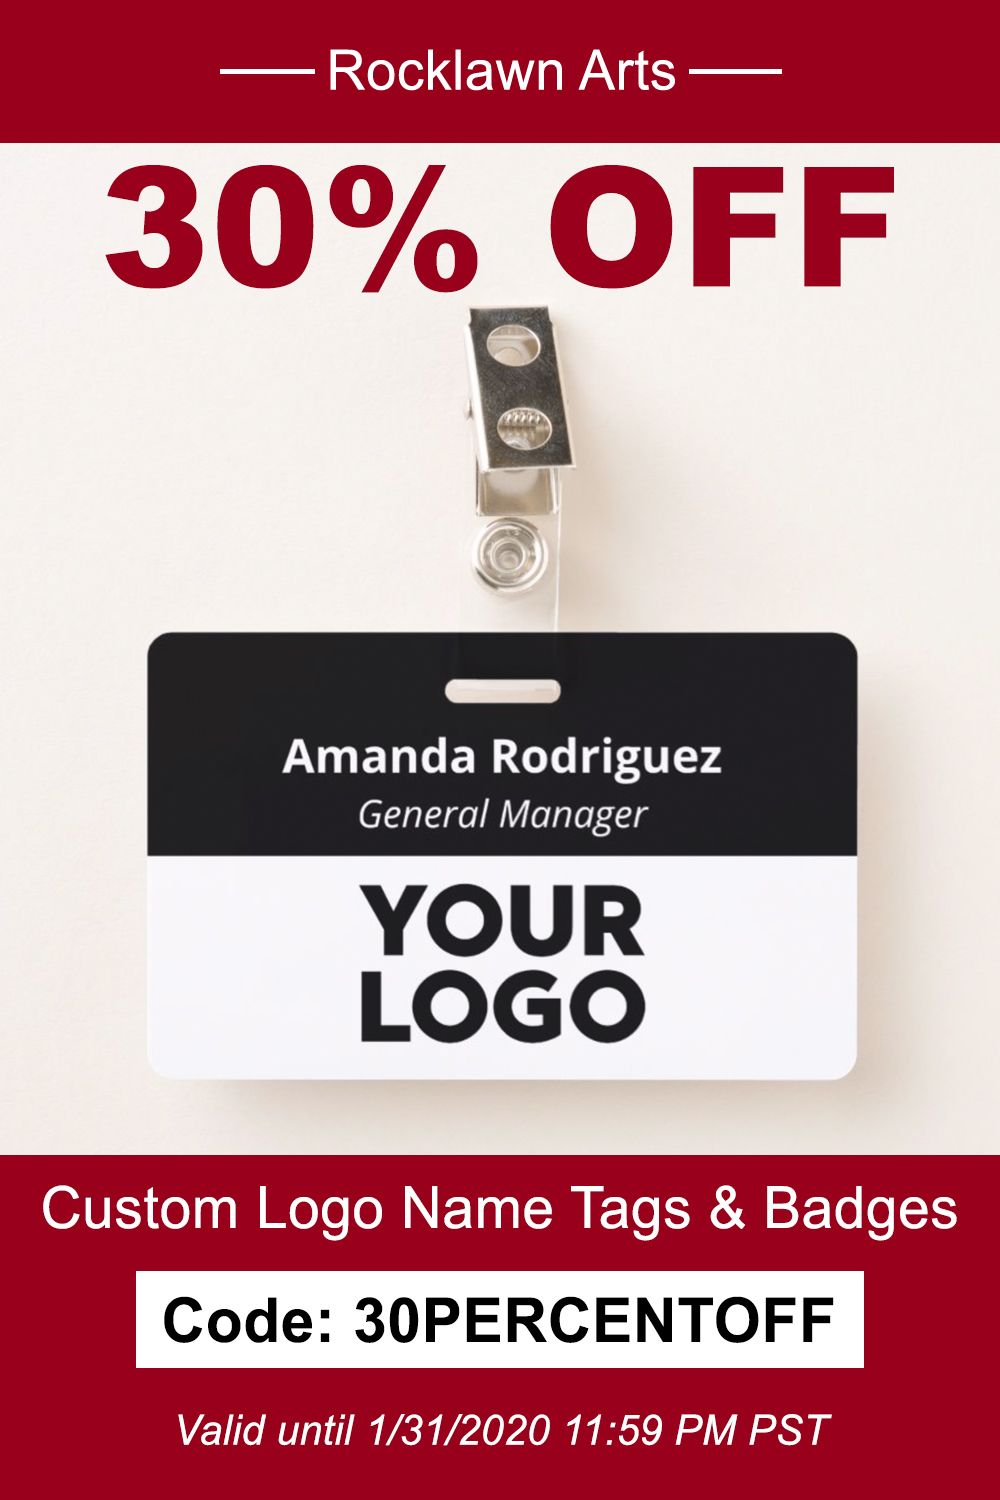 Add your logo to custom name tags and employee badges to